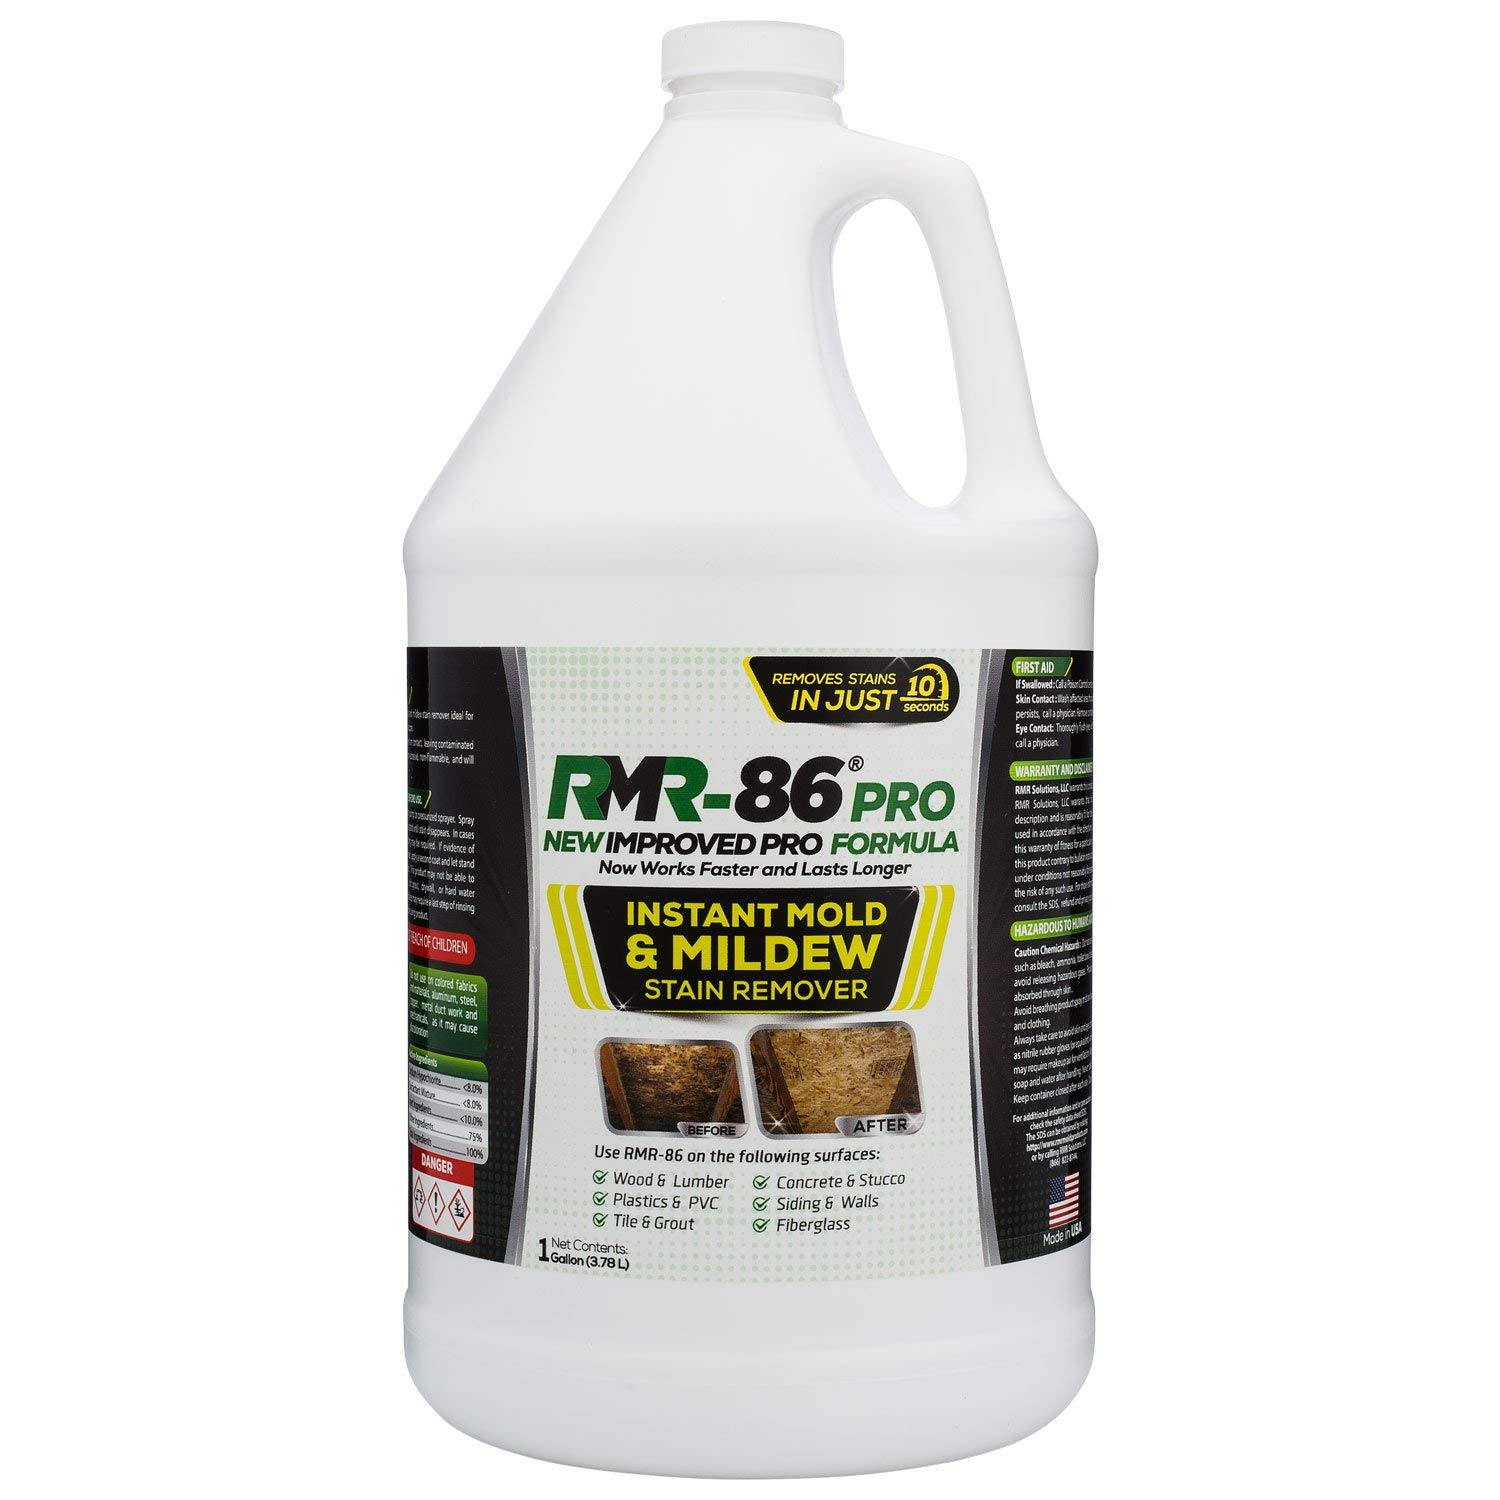 RMR-86 Pro Instant Mold & Mildew Stain Remover by RMR Products